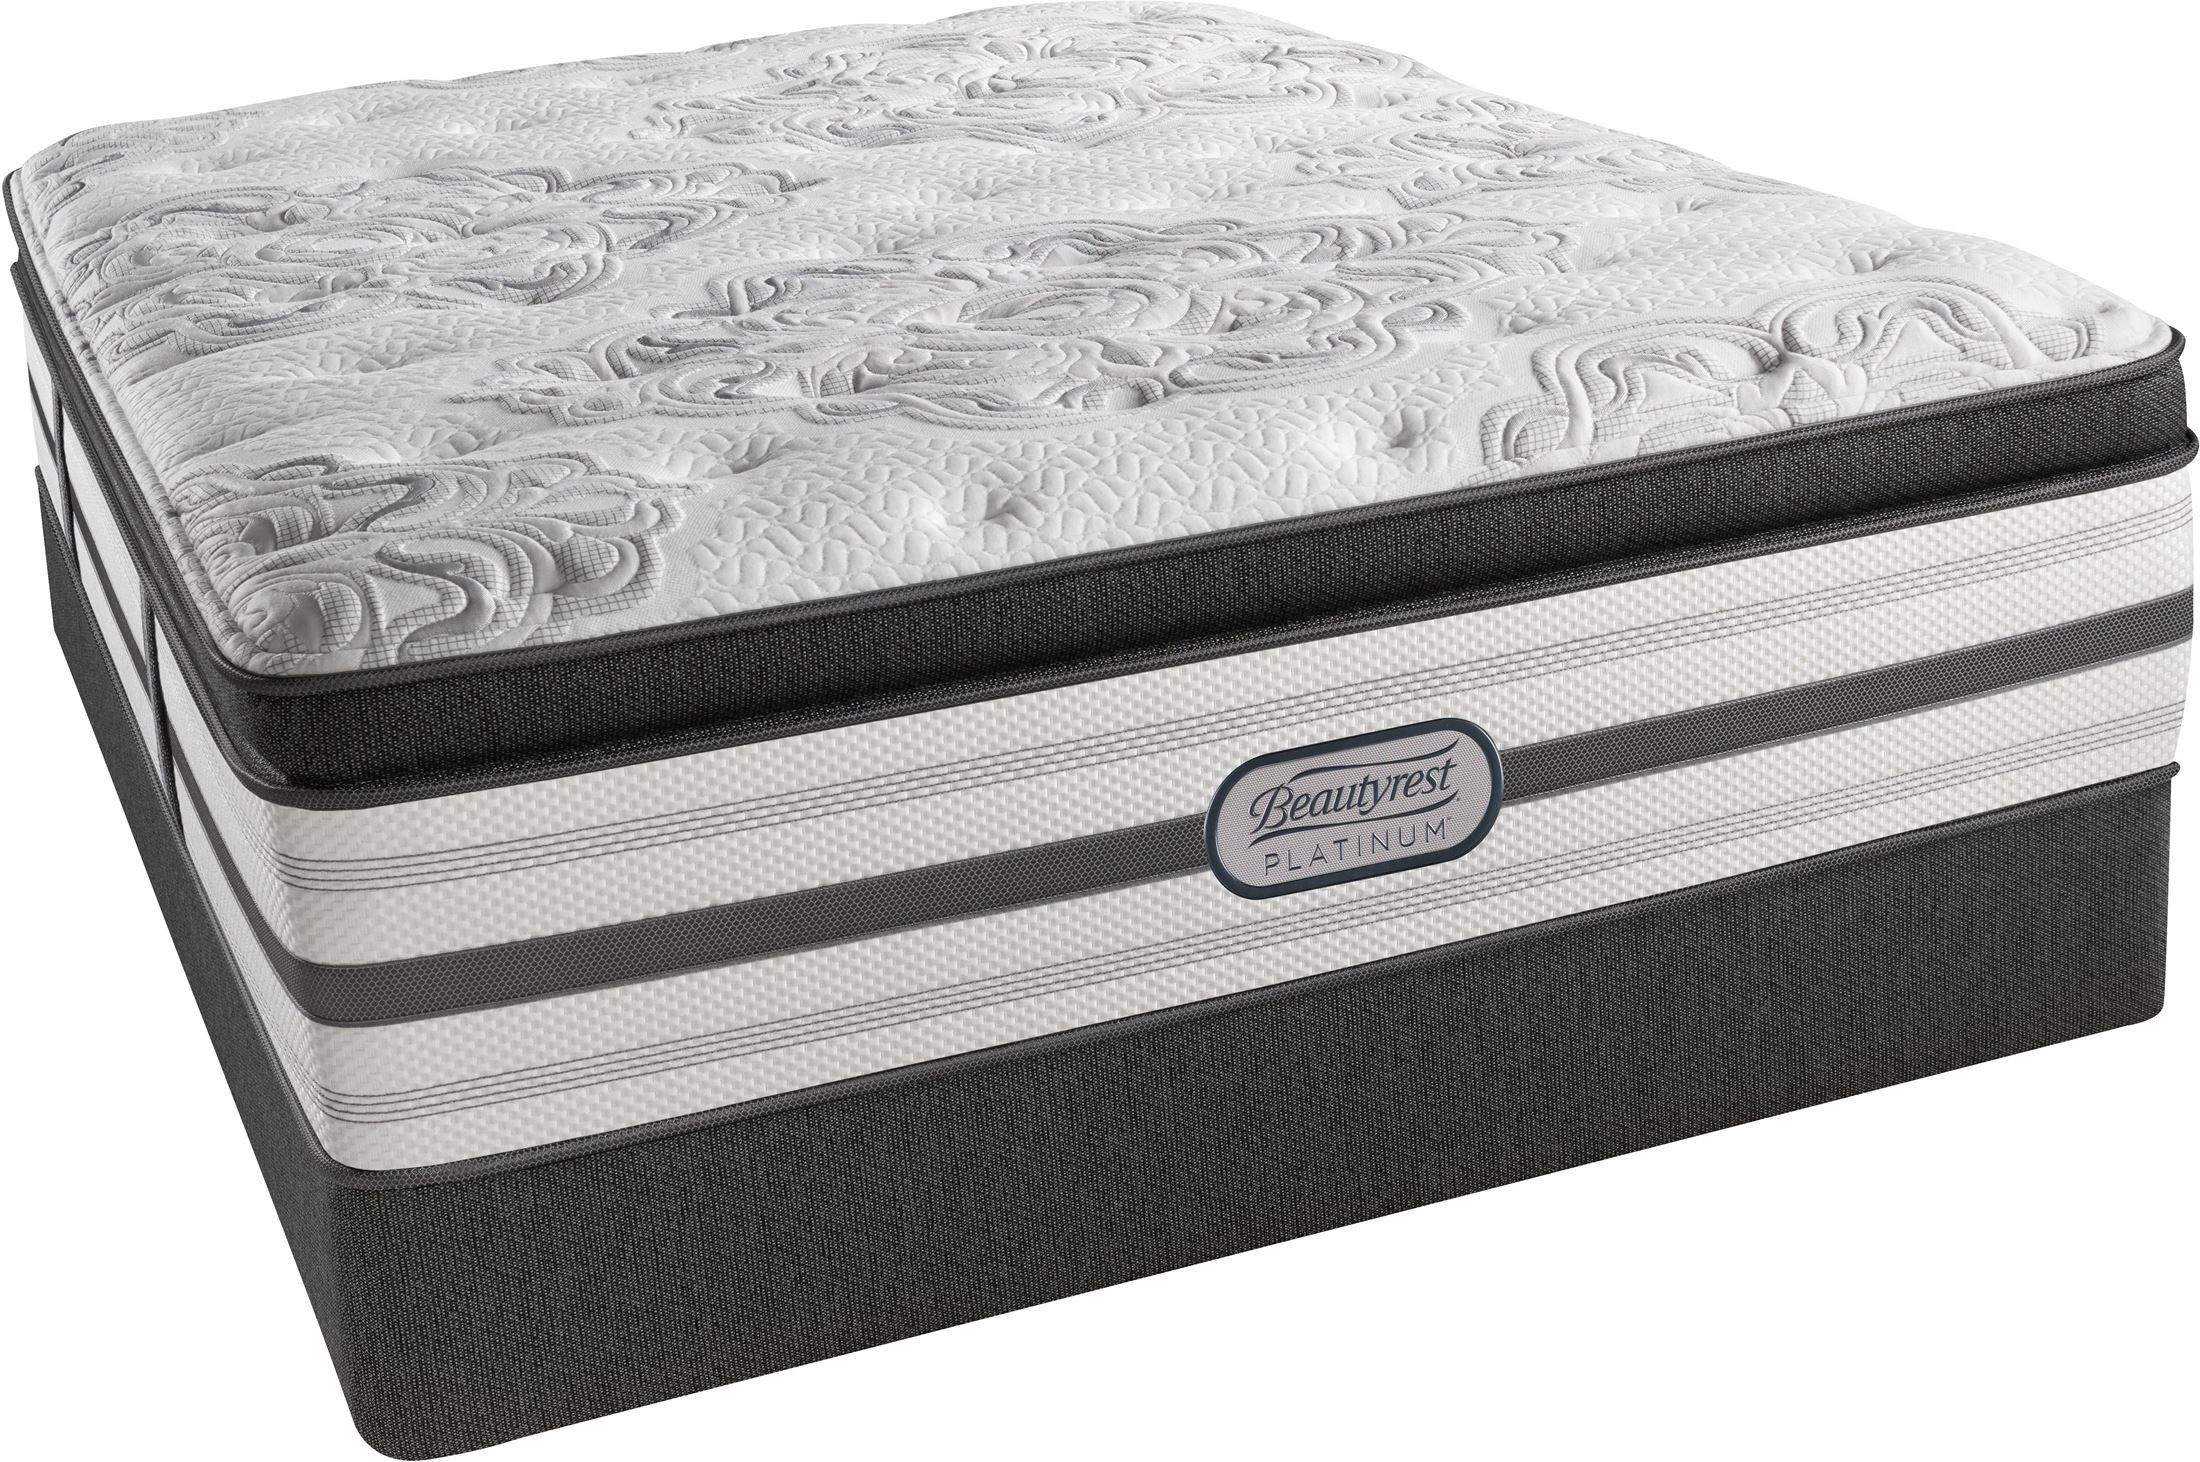 Beautyrest Recharge Platinum Gatsby Pillow Top Plush Queen Size Mattress From Simmons Coleman